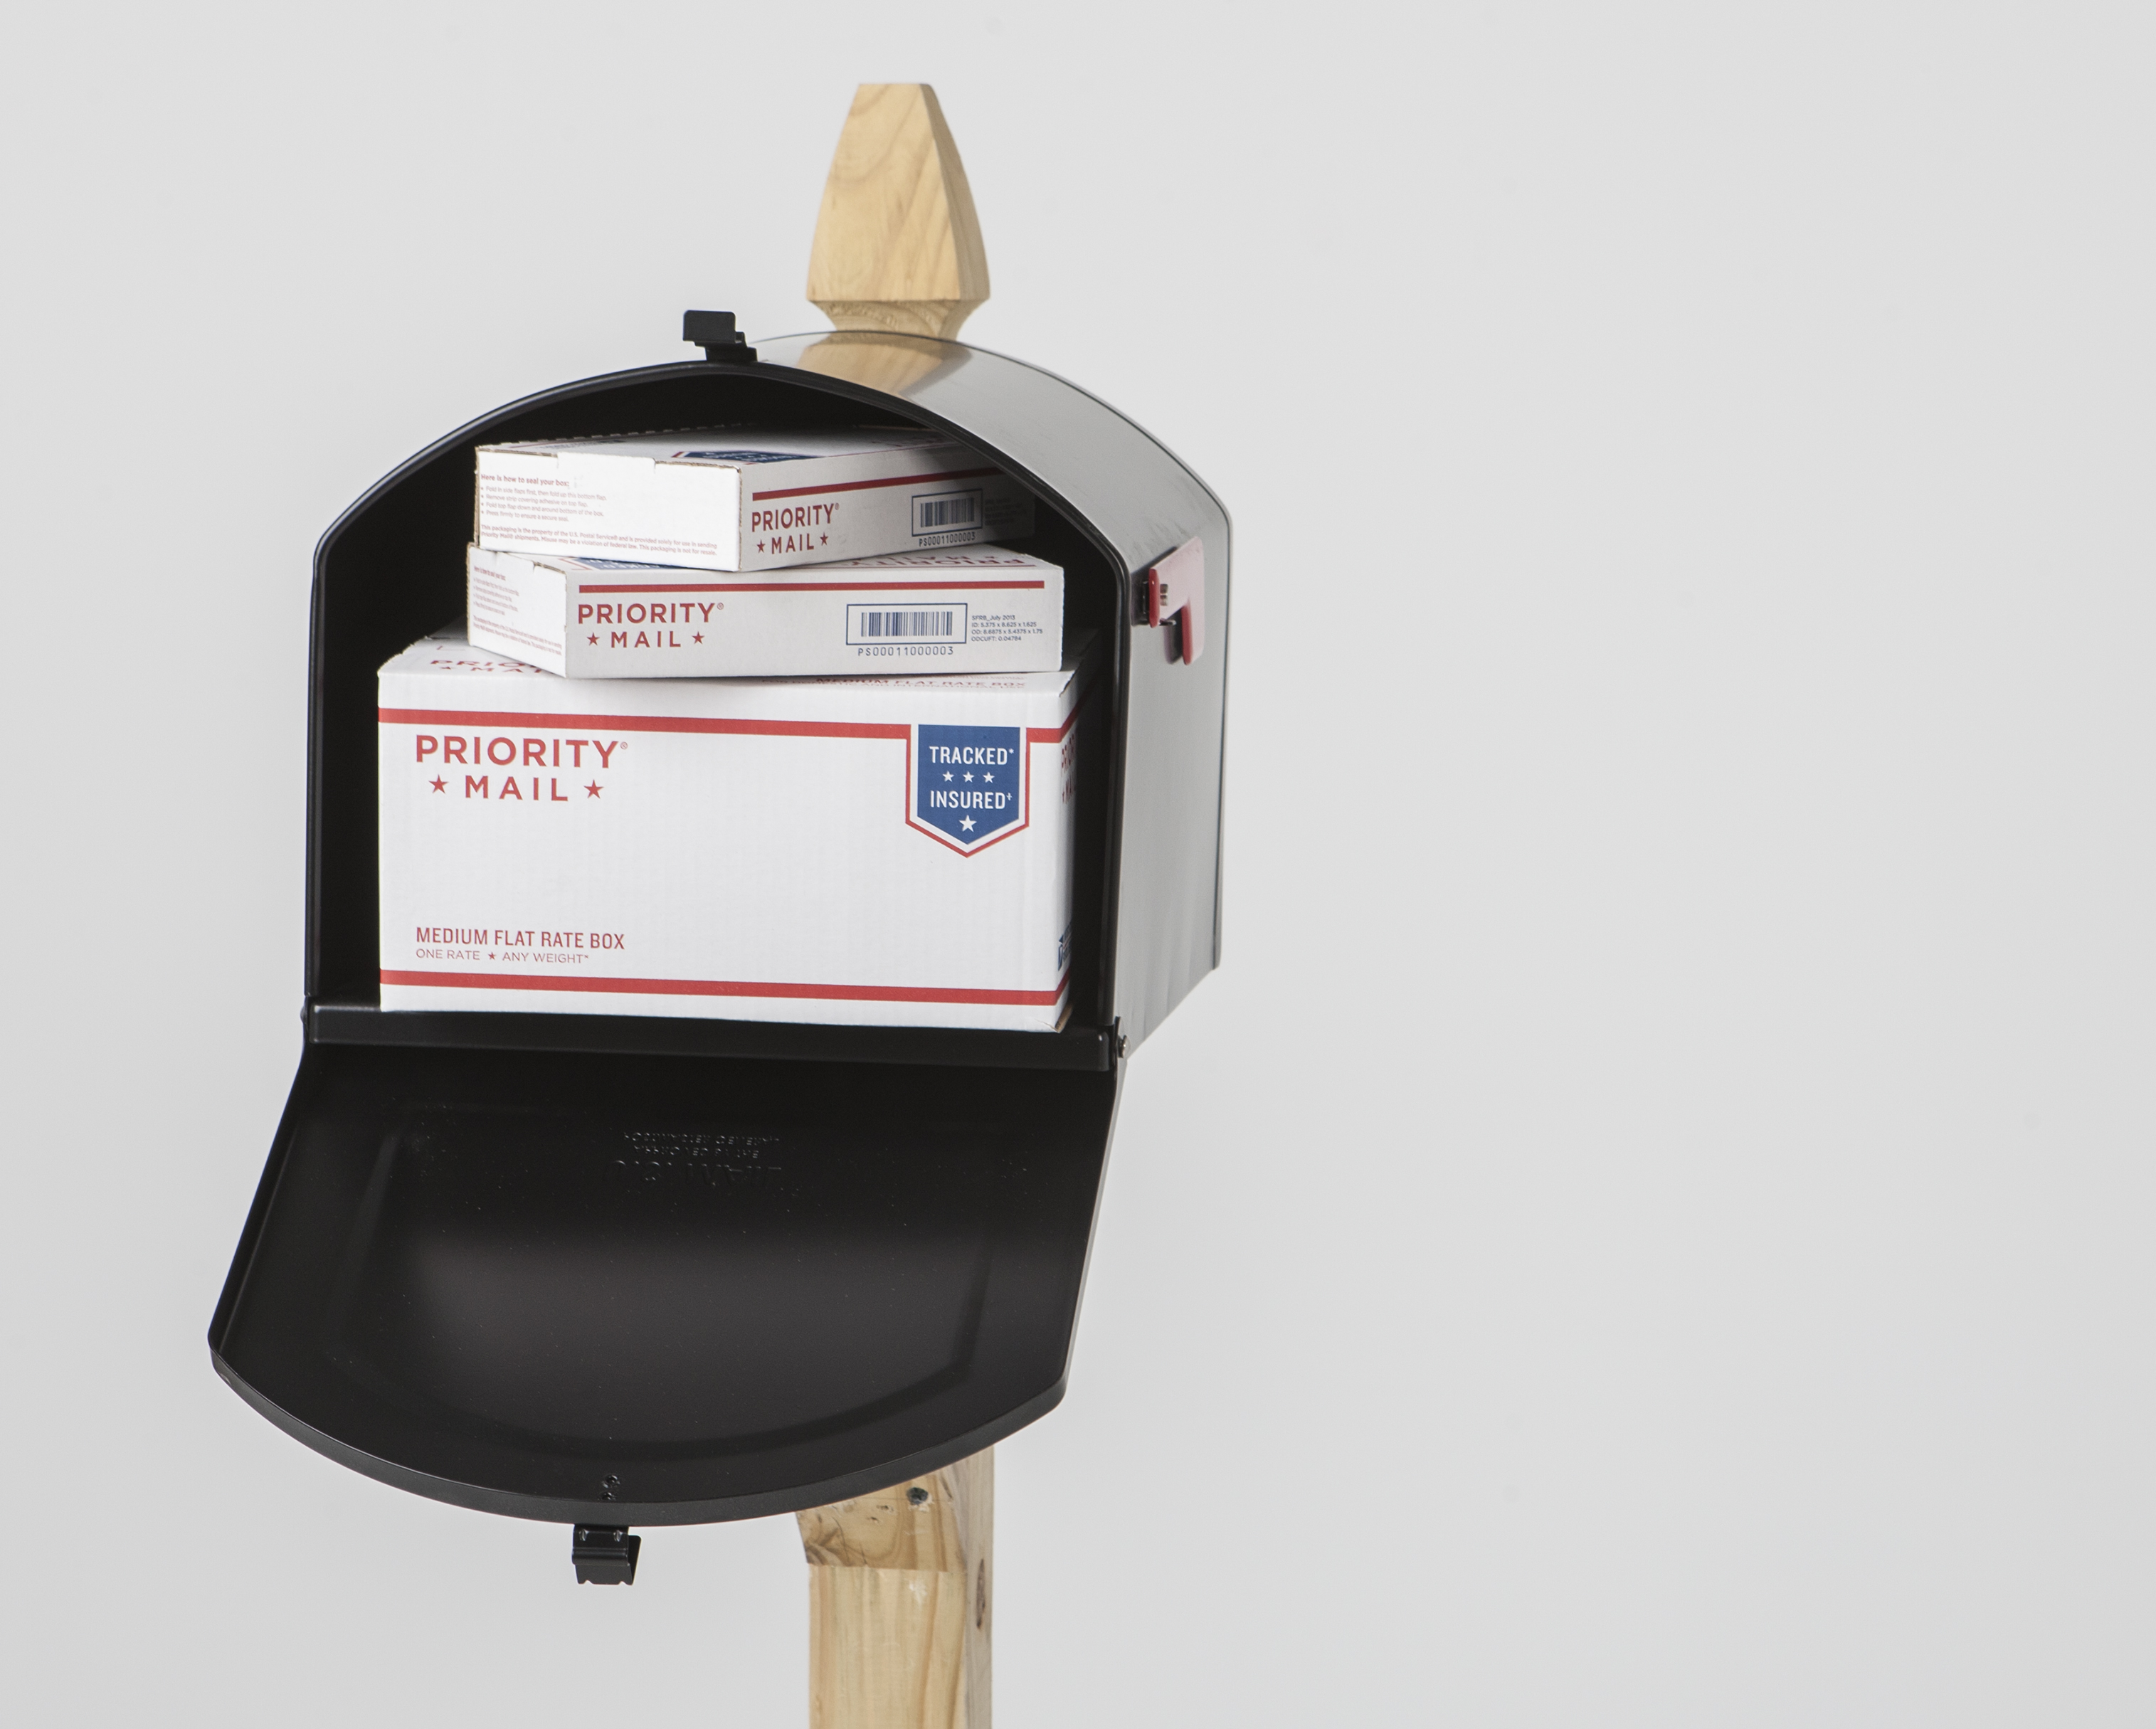 Usps packages 17006 002 09 11 2017